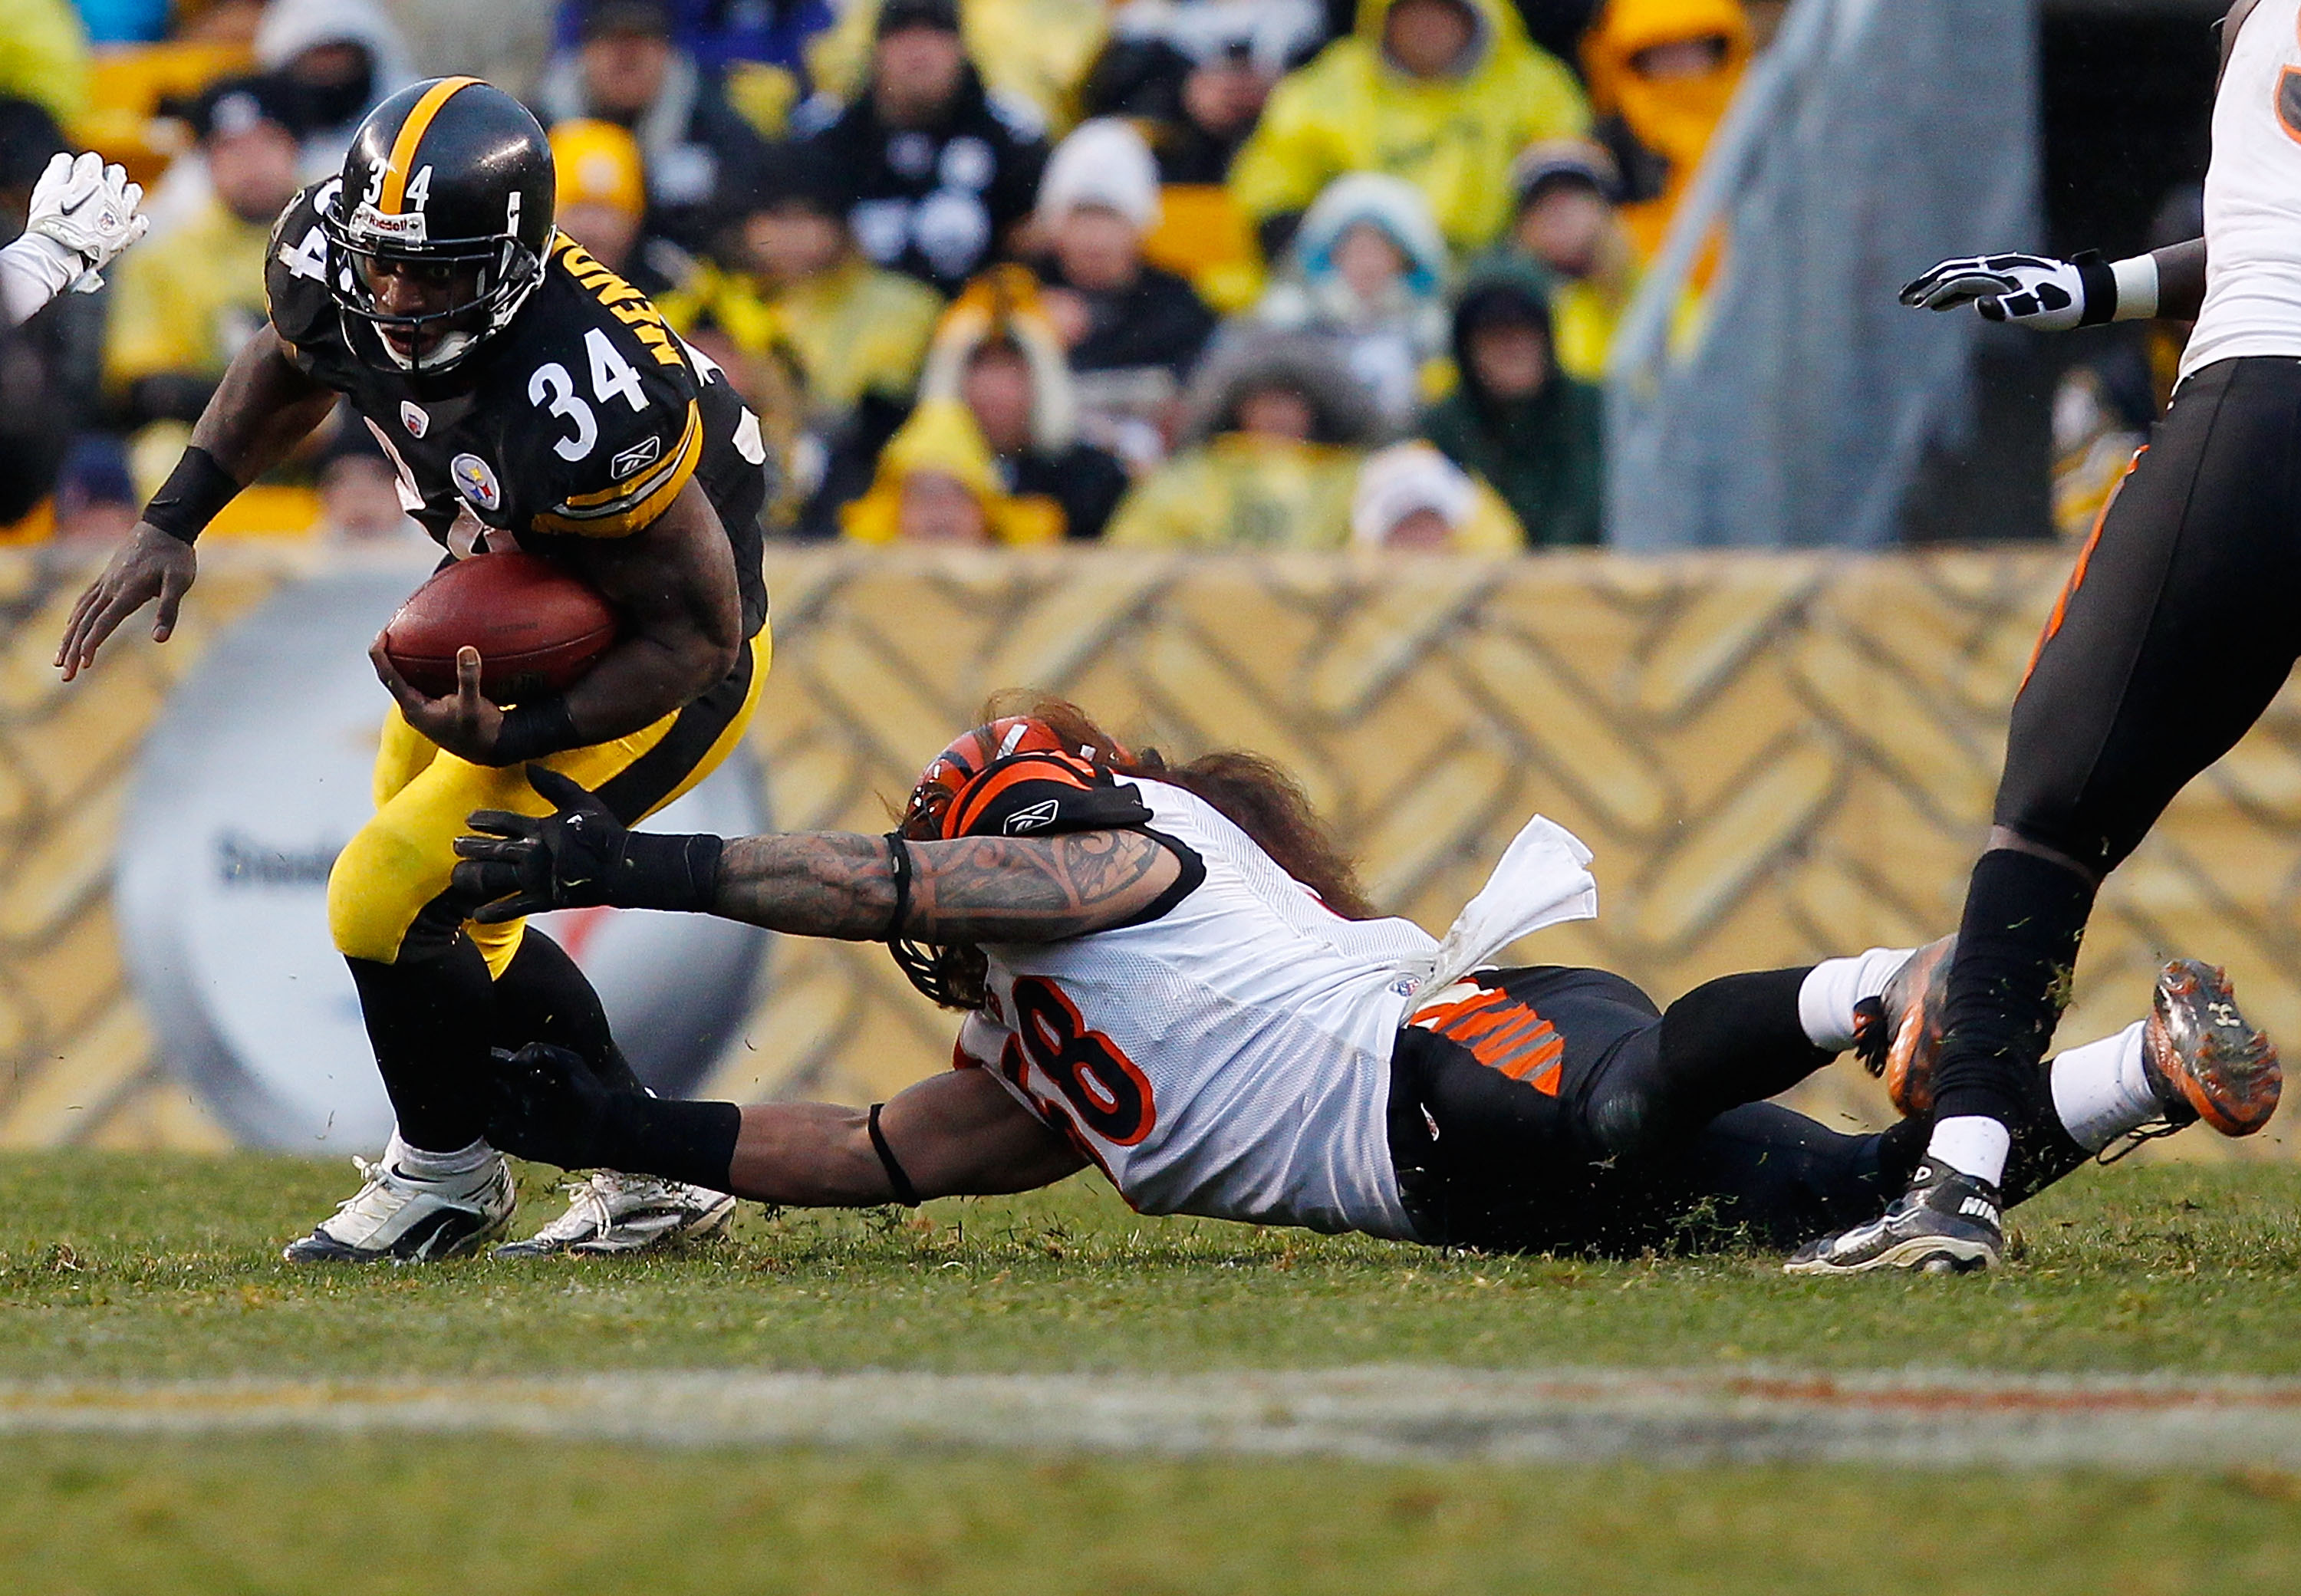 PITTSBURGH - DECEMBER 12:  Rashard Mendenhall #34 of the Pittsburgh Steelers runs with the ball against the Cincinnati Bengals during the game on December 12, 2010 at Heinz Field in Pittsburgh, Pennsylvania.  (Photo by Jared Wickerham/Getty Images)